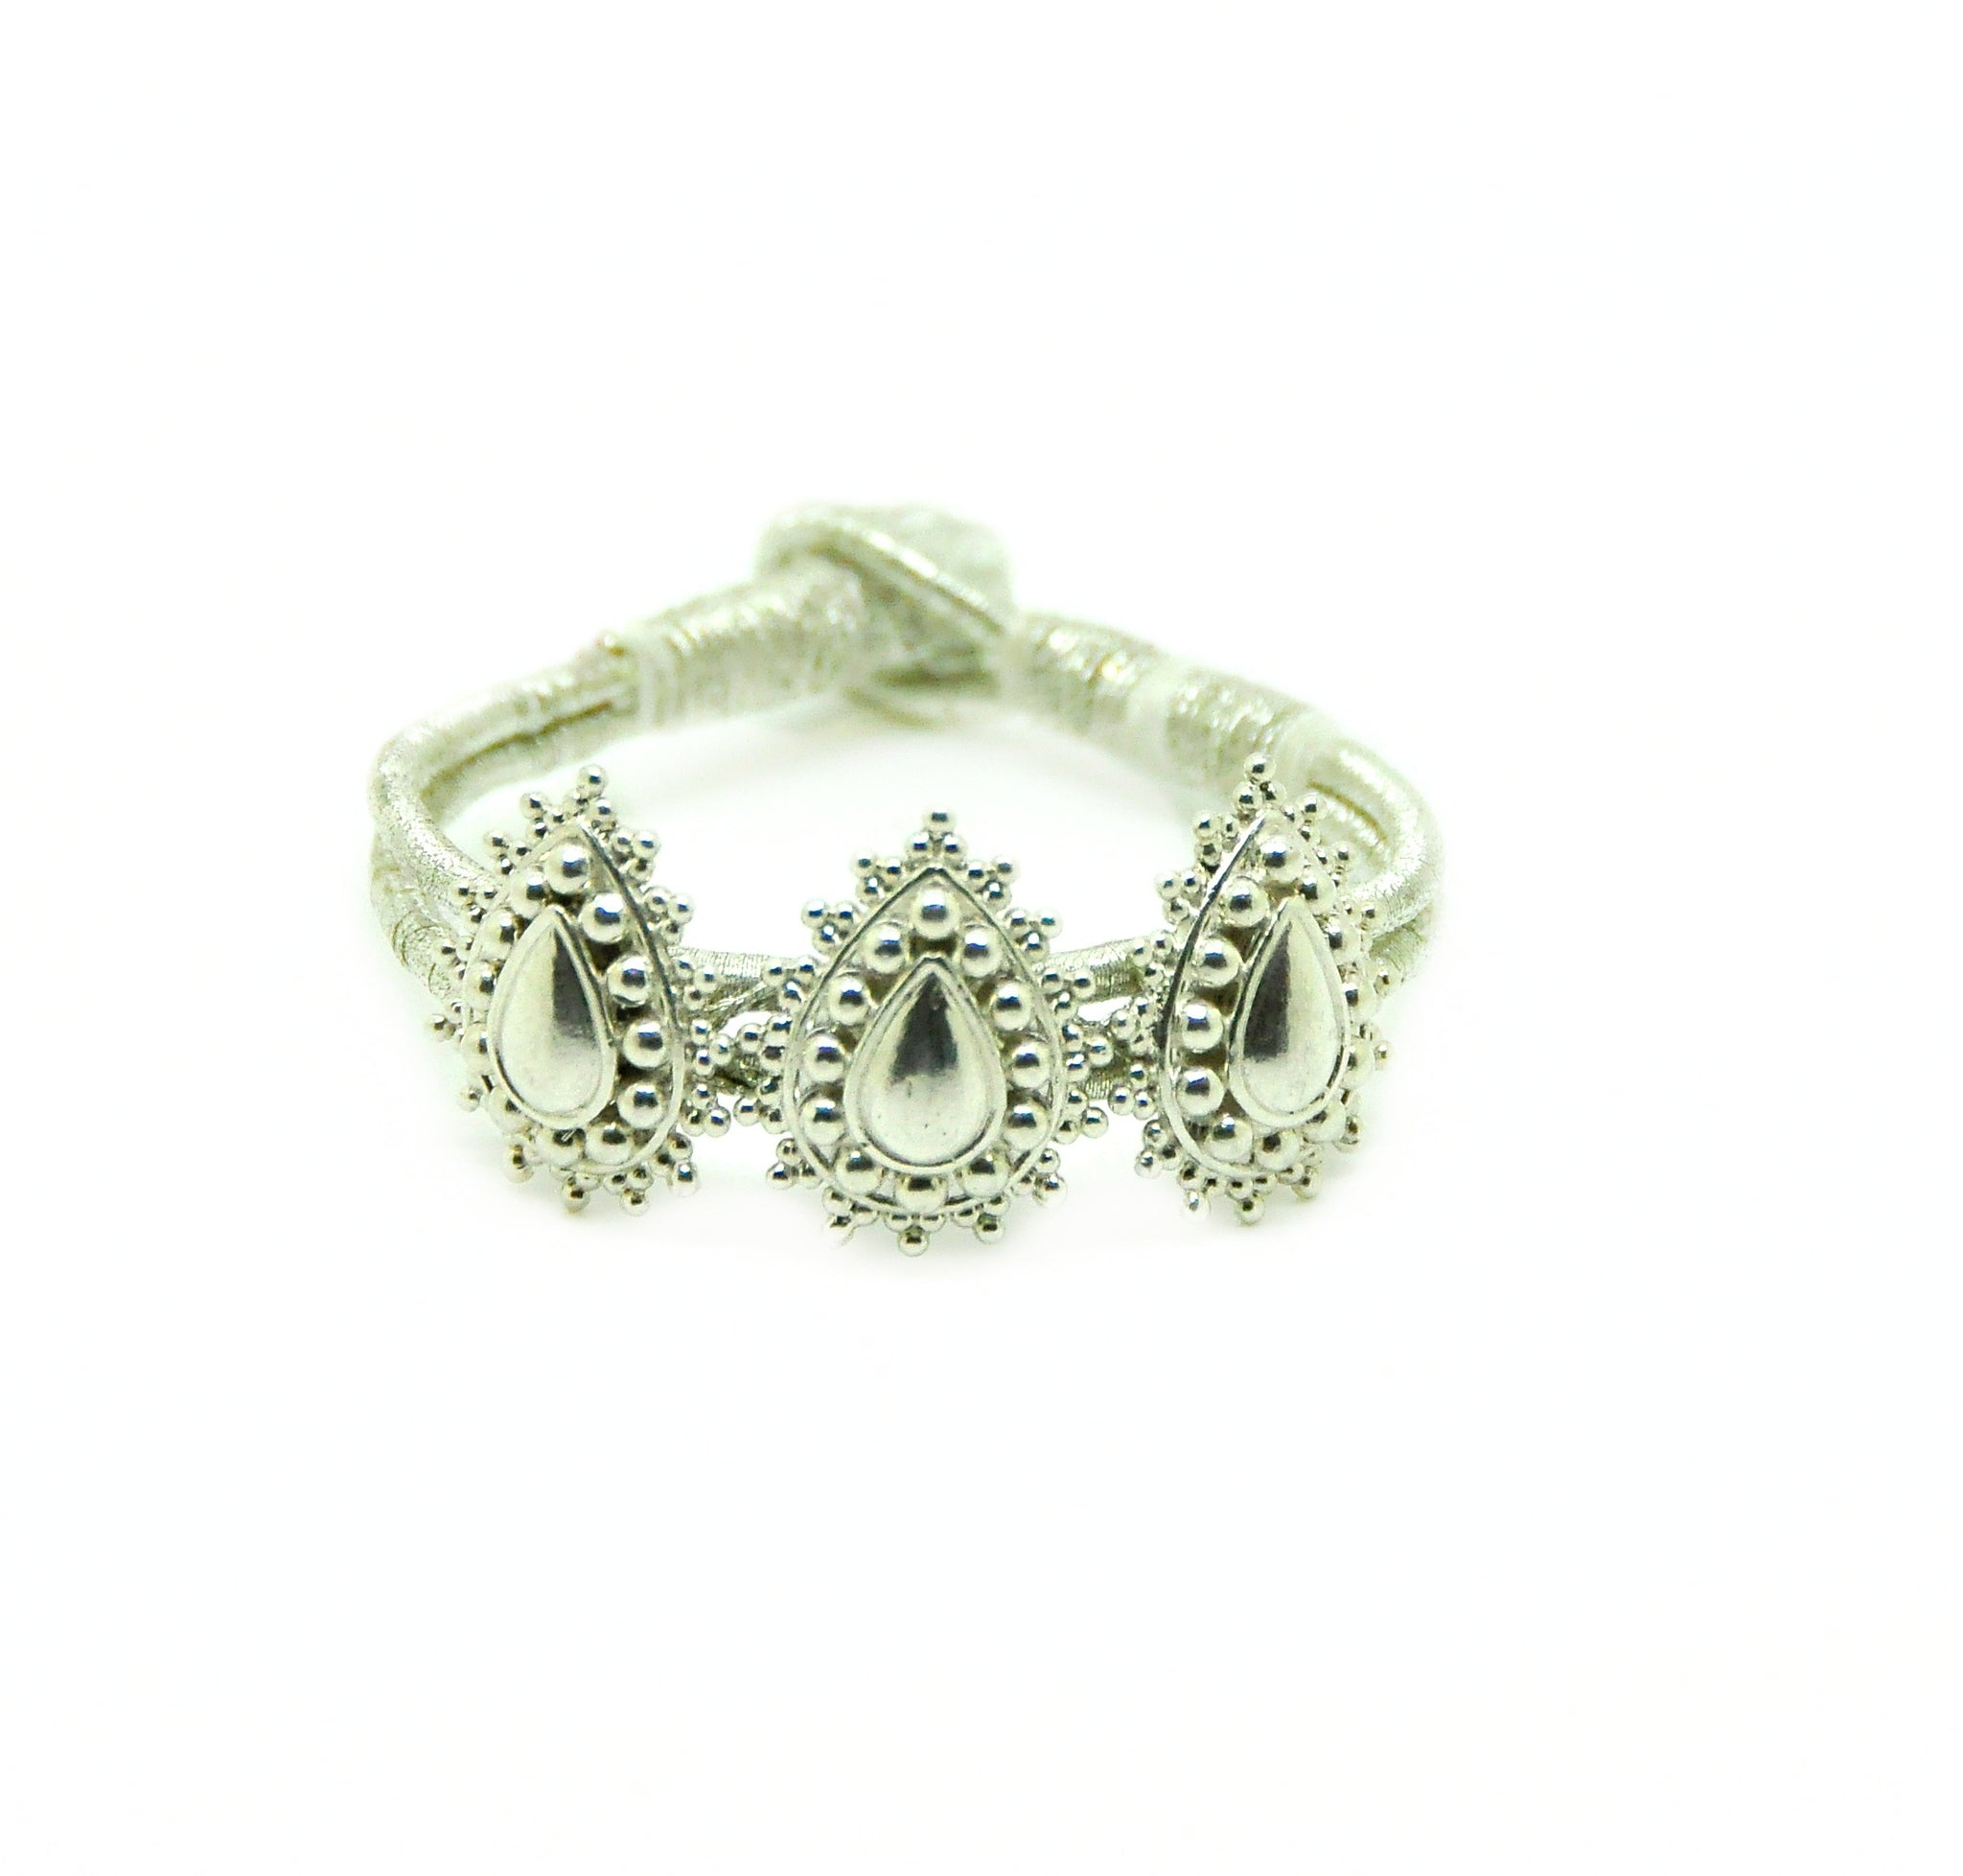 SOLD - ON SALE (Clearance) Pochi Bracelet - Marquise 2